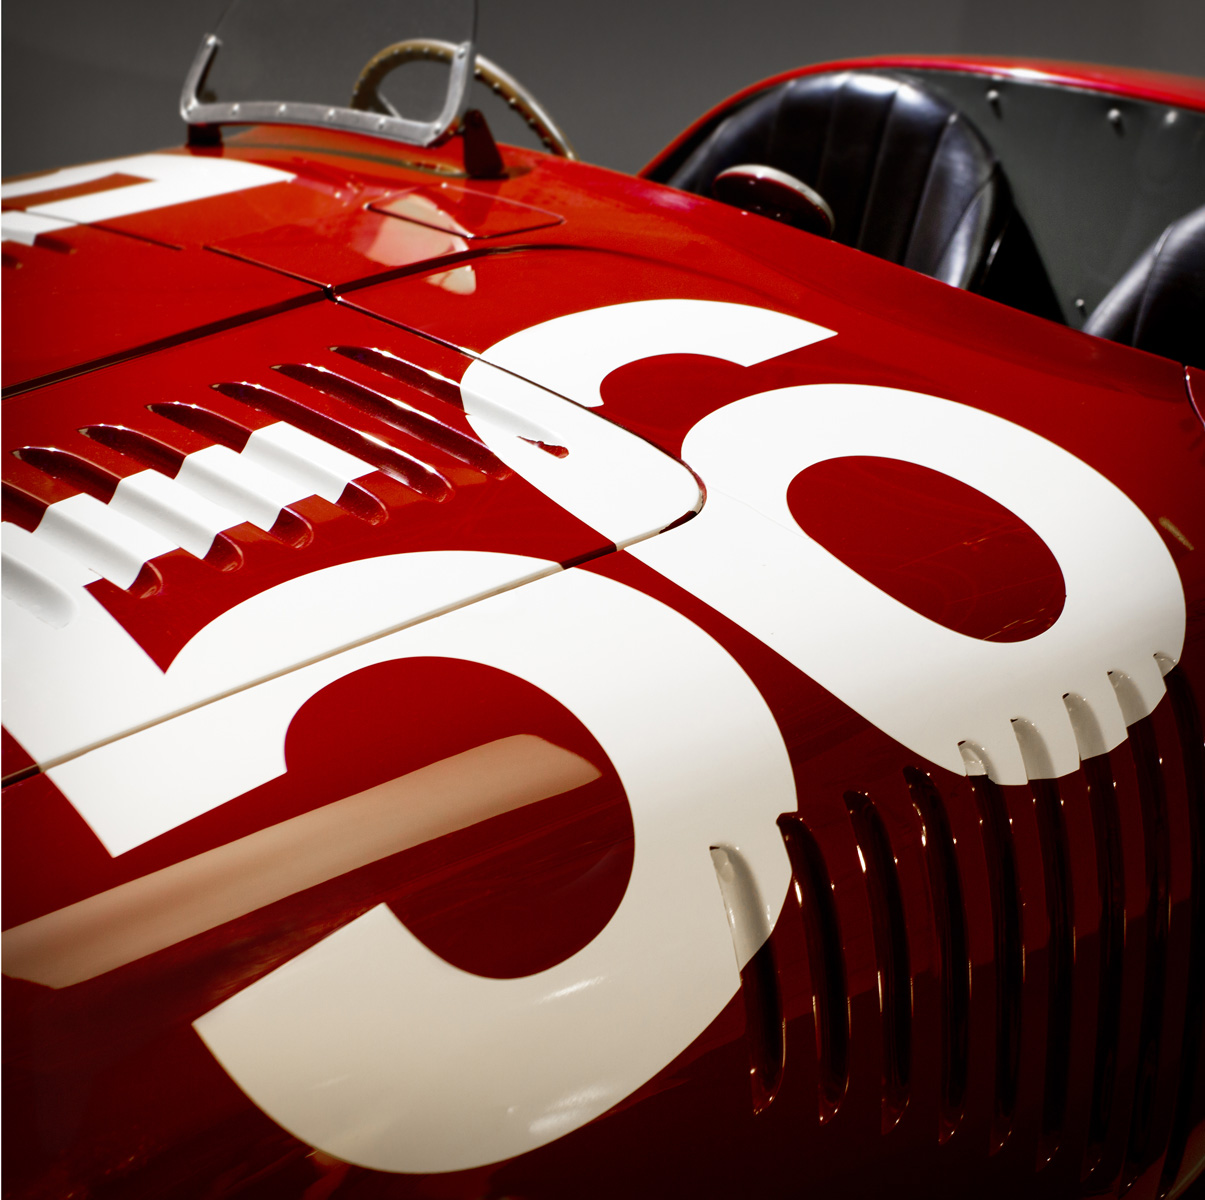 Ferrari Collection, Limited Edition Prints, Print no.01, 1947 Ferrari 125s, Marinello